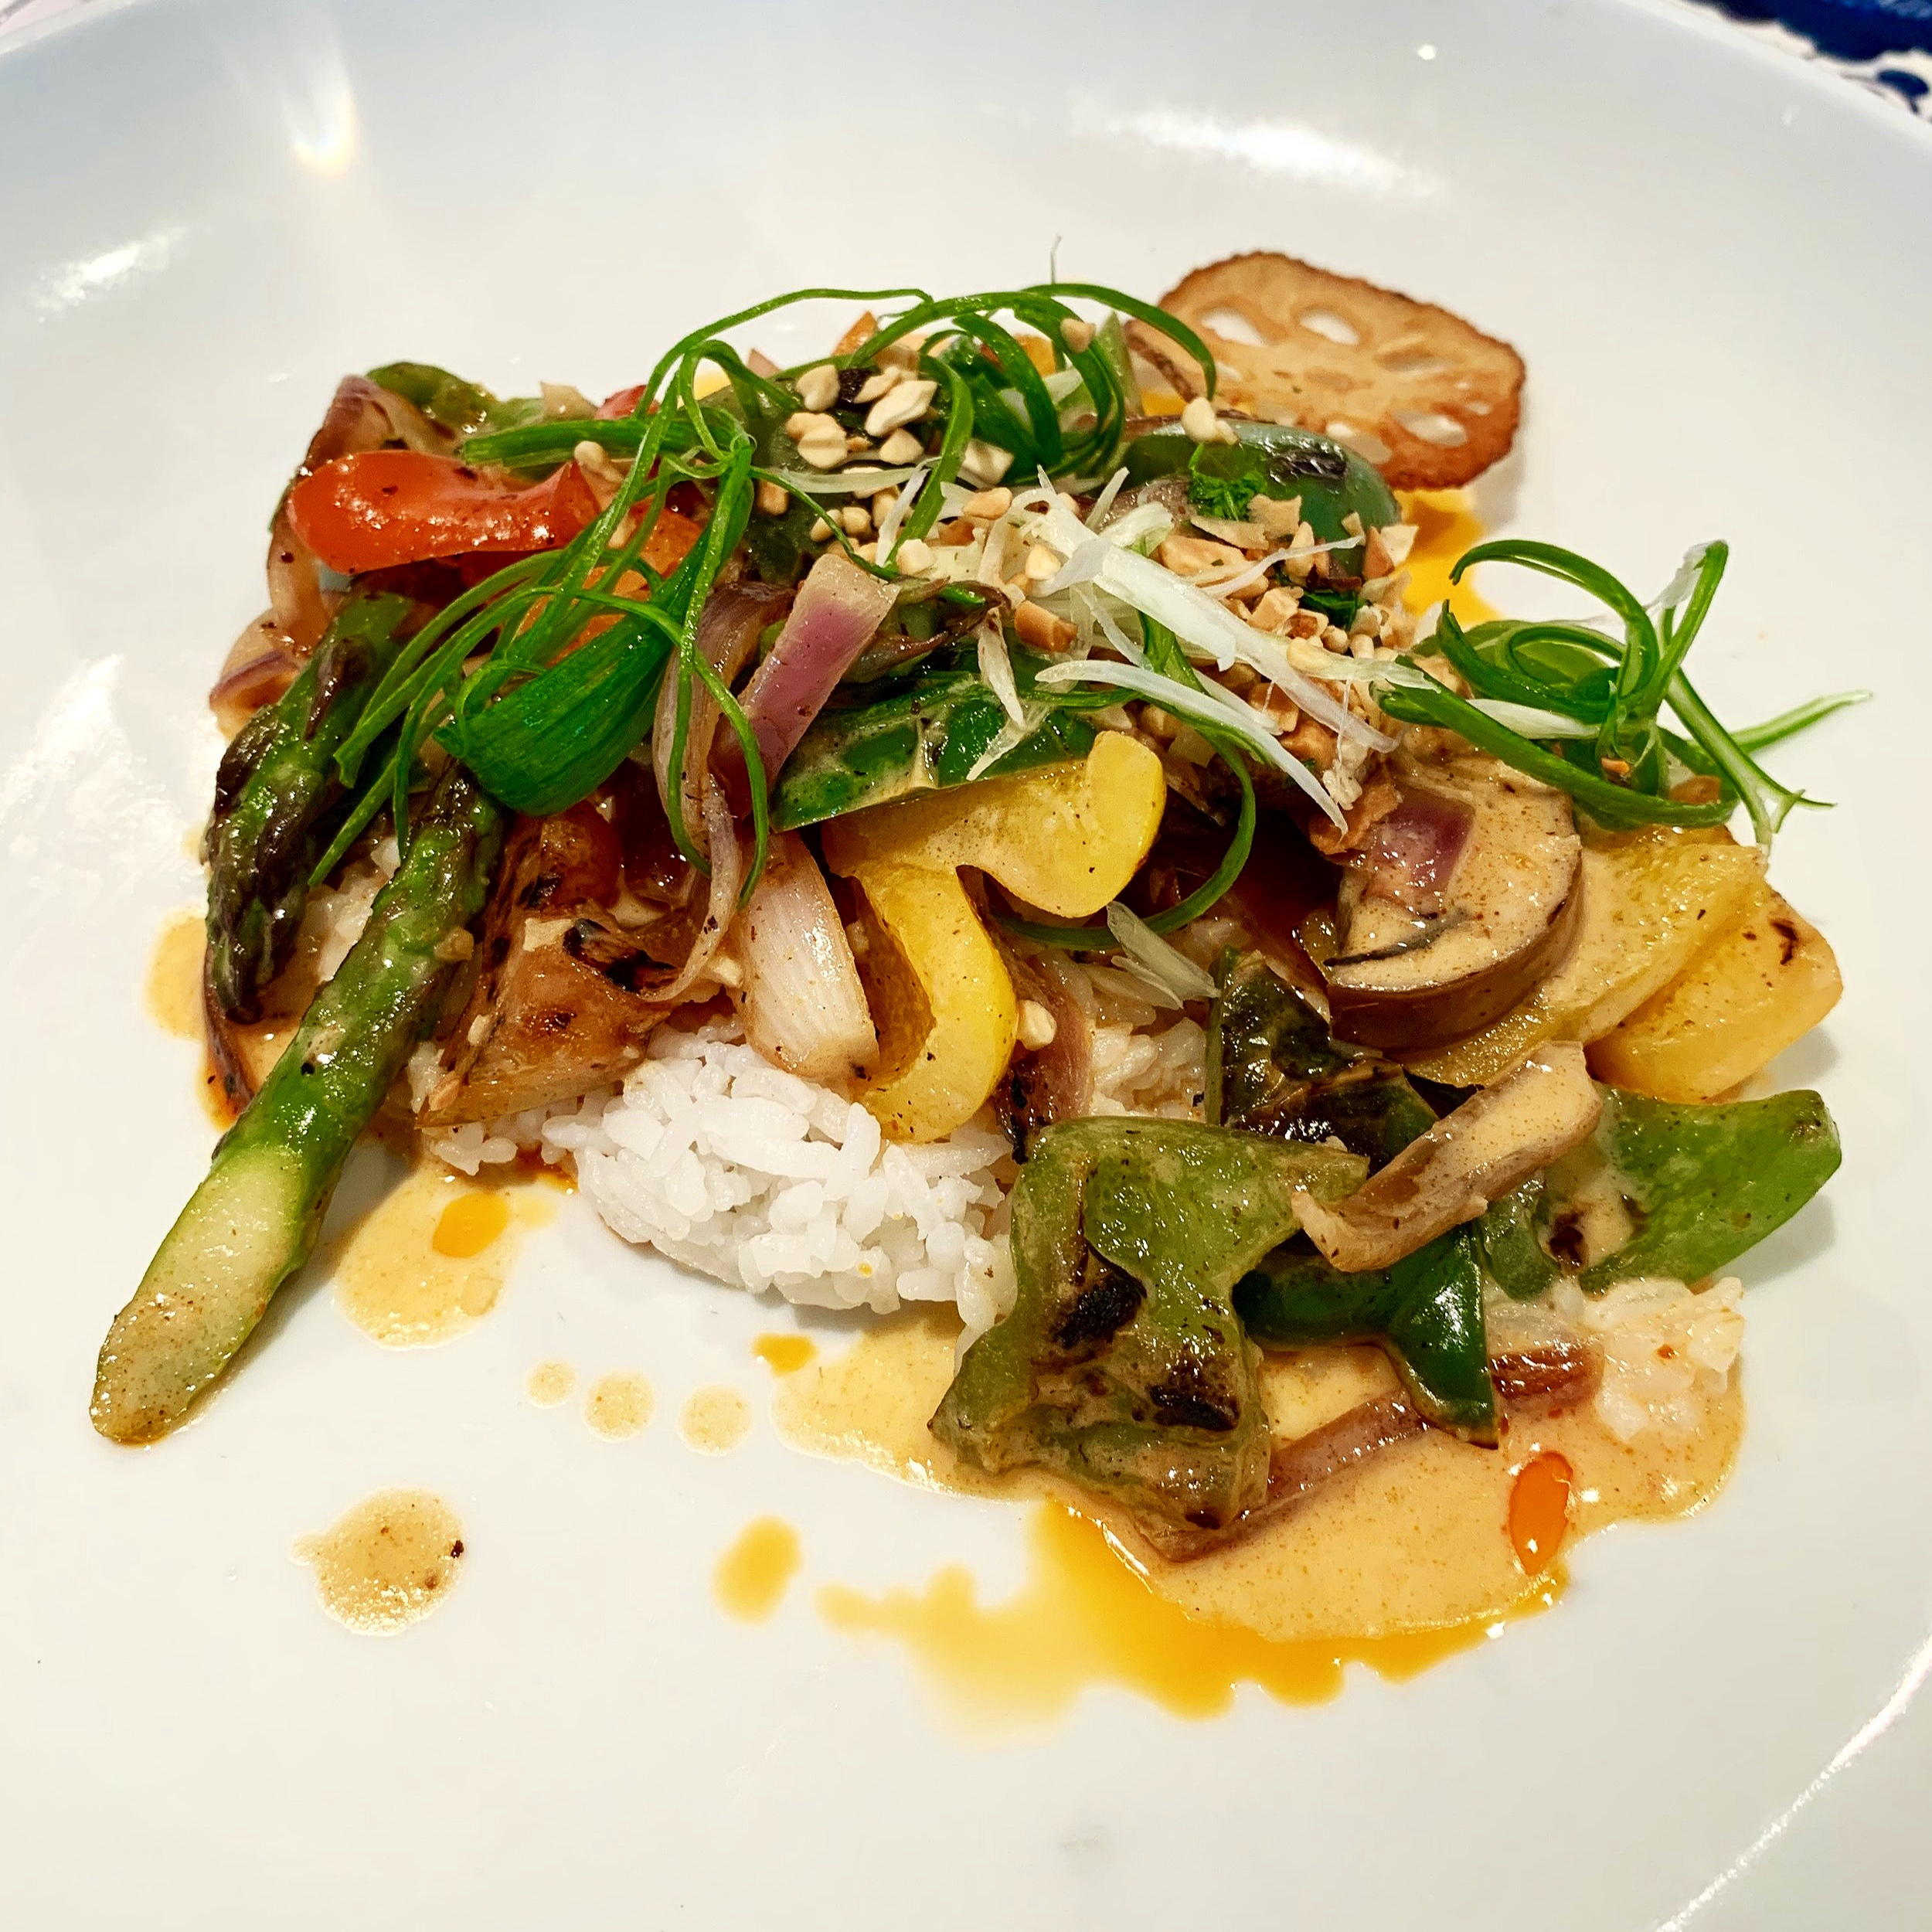 The vegetarian main - an impressively delicious eggplant massaman curry.